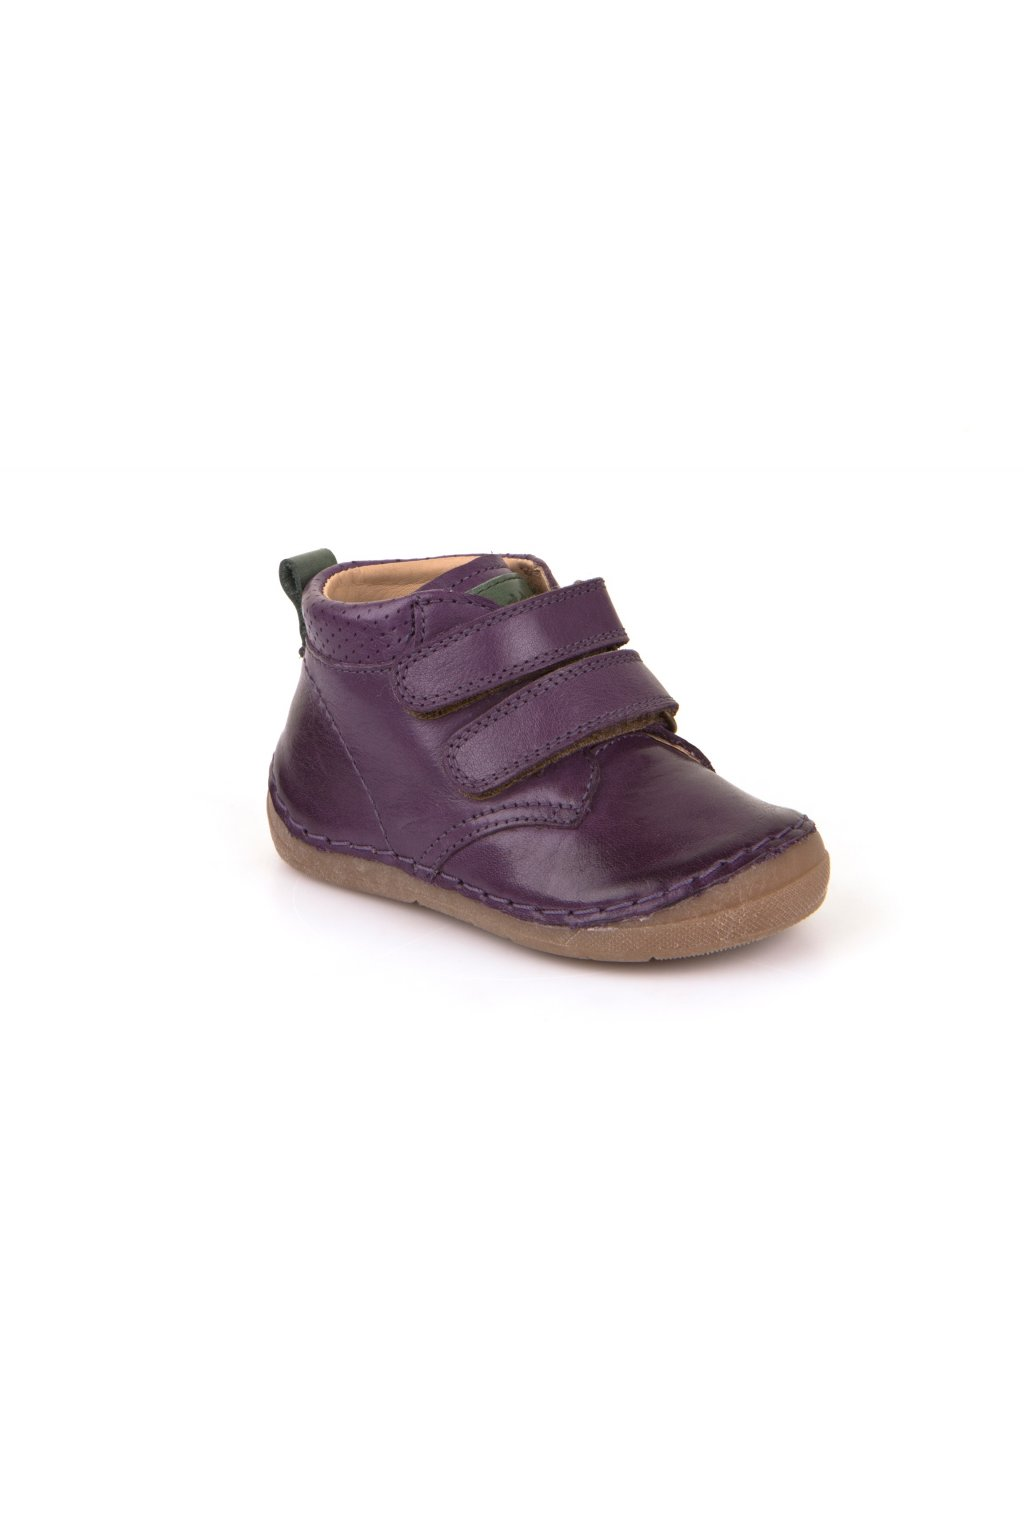 Froddo Shoes Purple